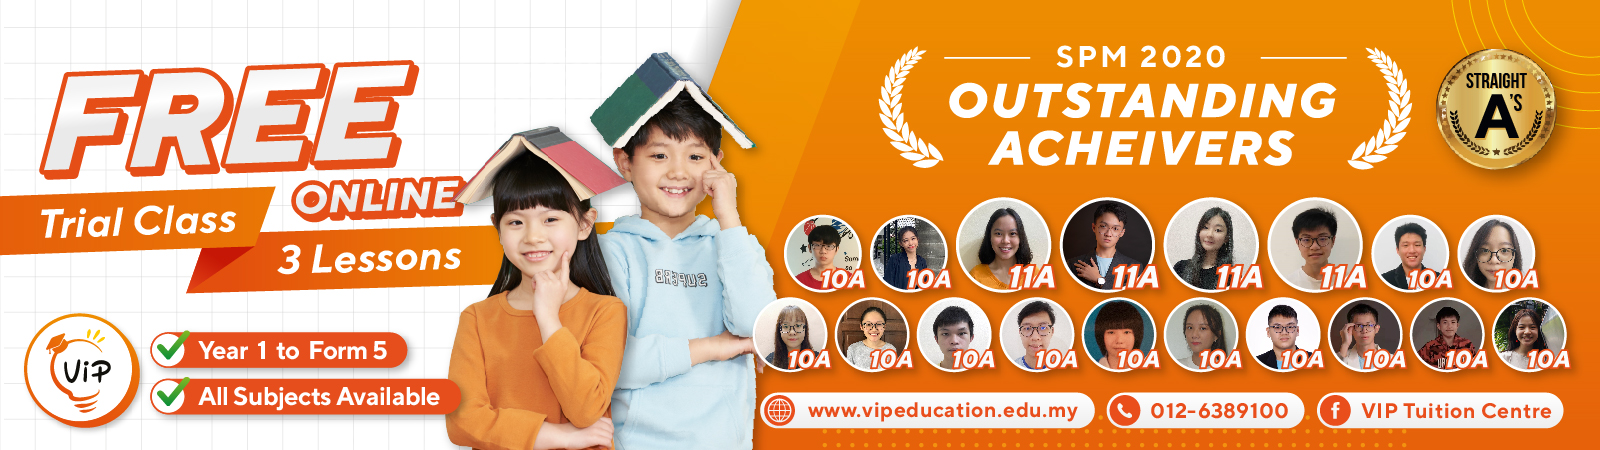 VIP Online Tuition: Effective And Engaging Online Classes